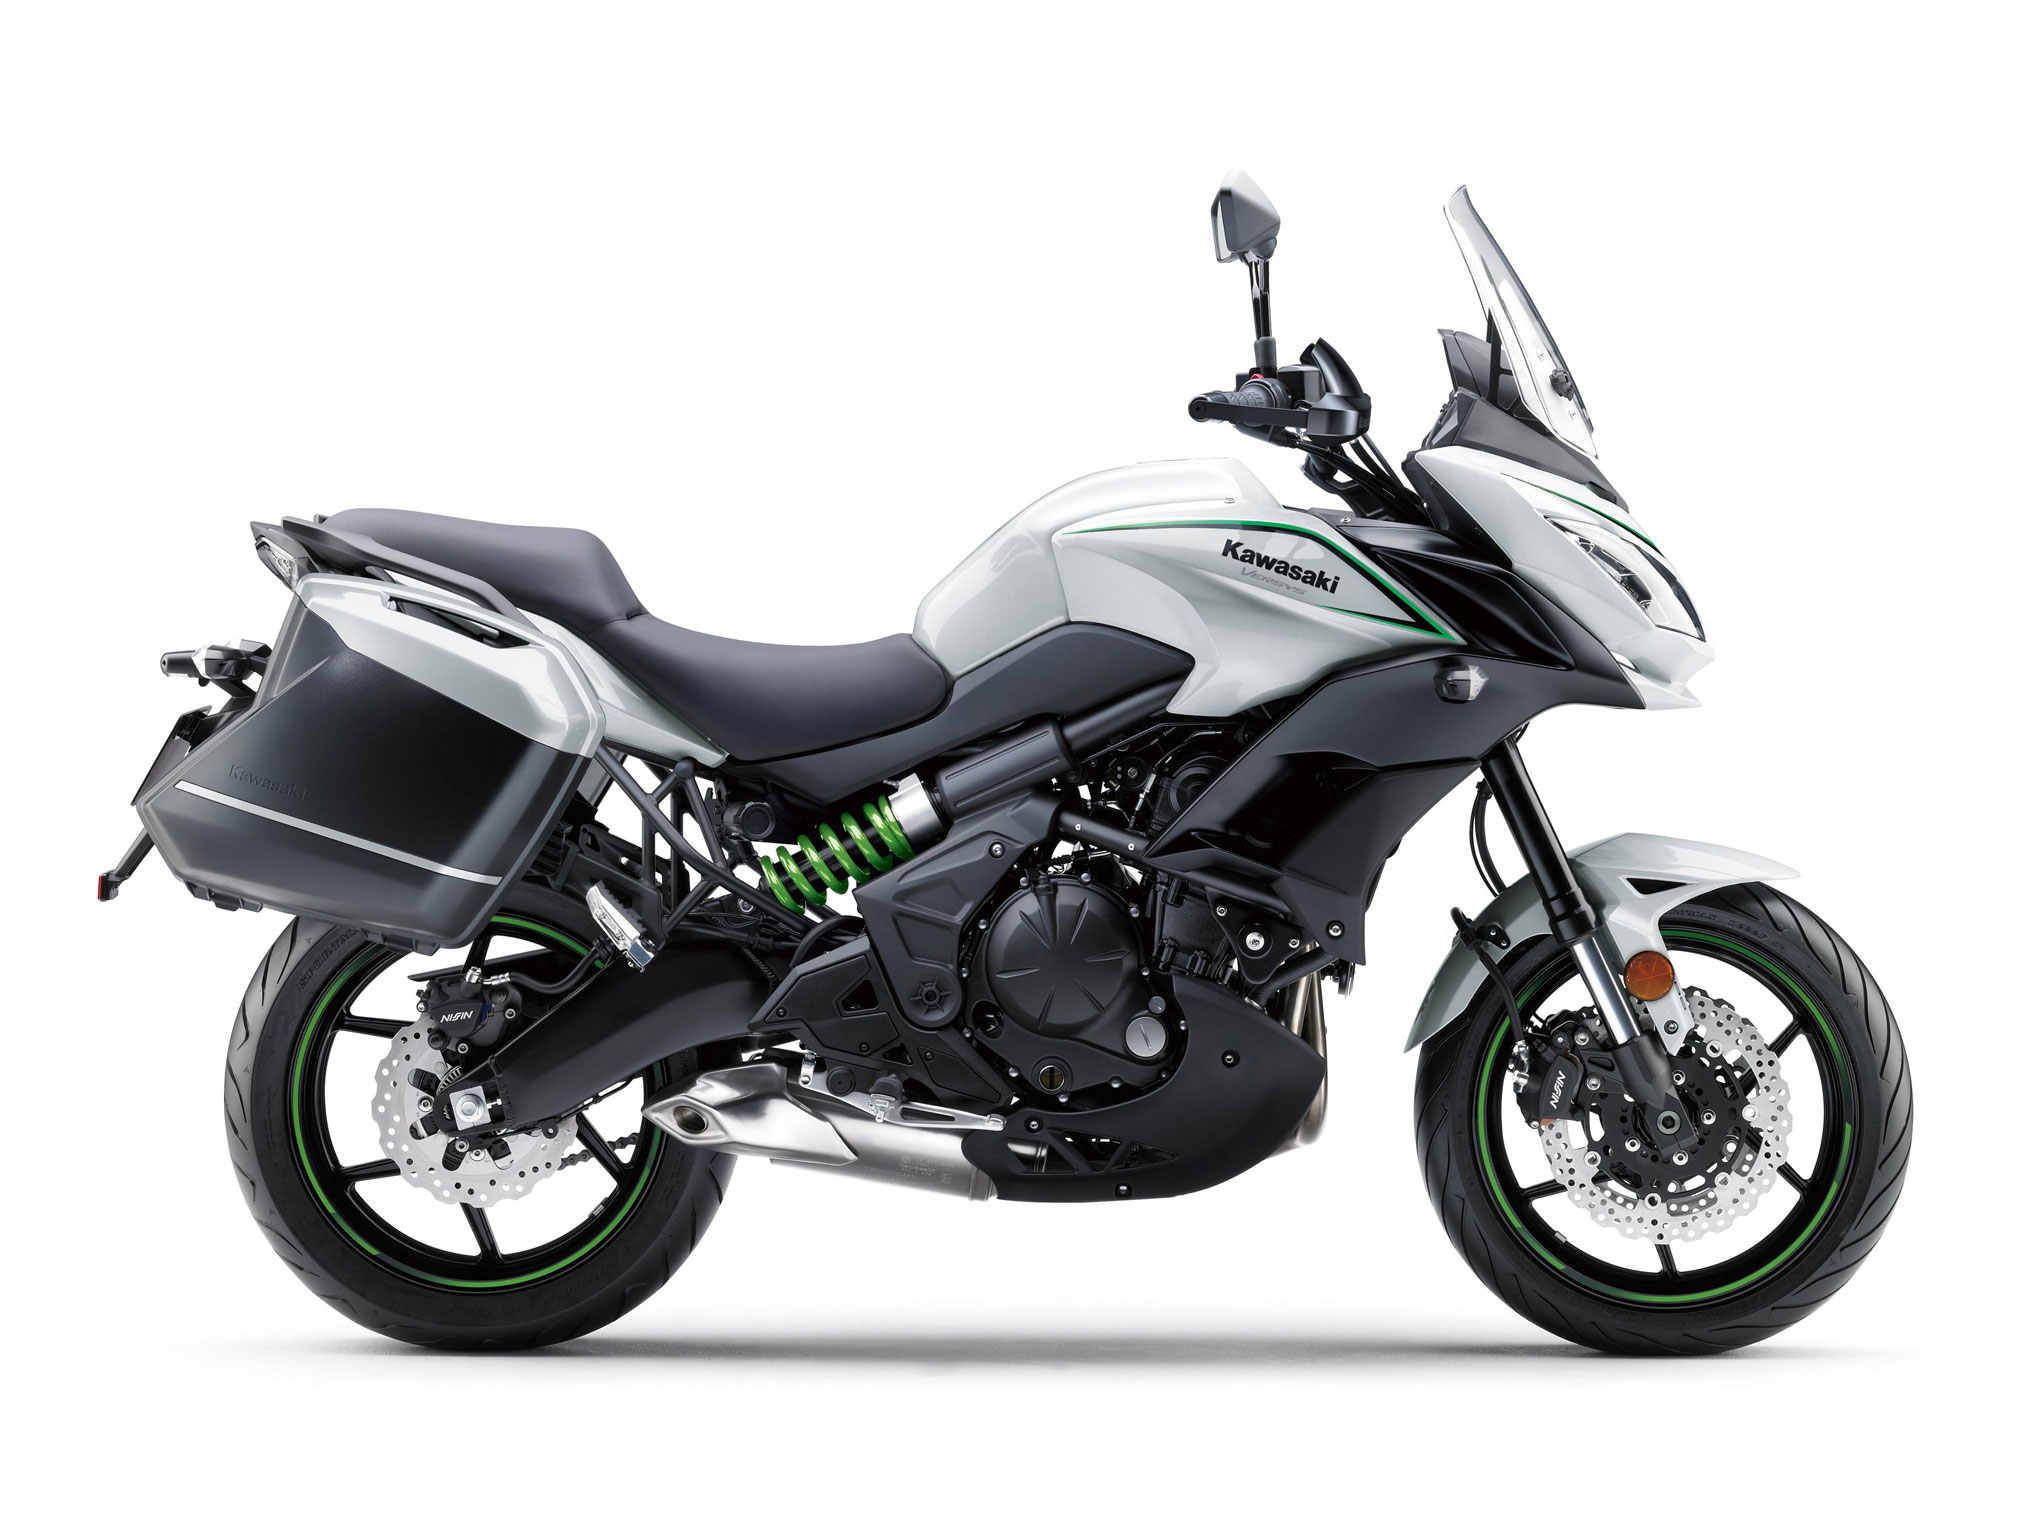 2018 kawasaki versys 650 lt abs review total motorcycle. Black Bedroom Furniture Sets. Home Design Ideas